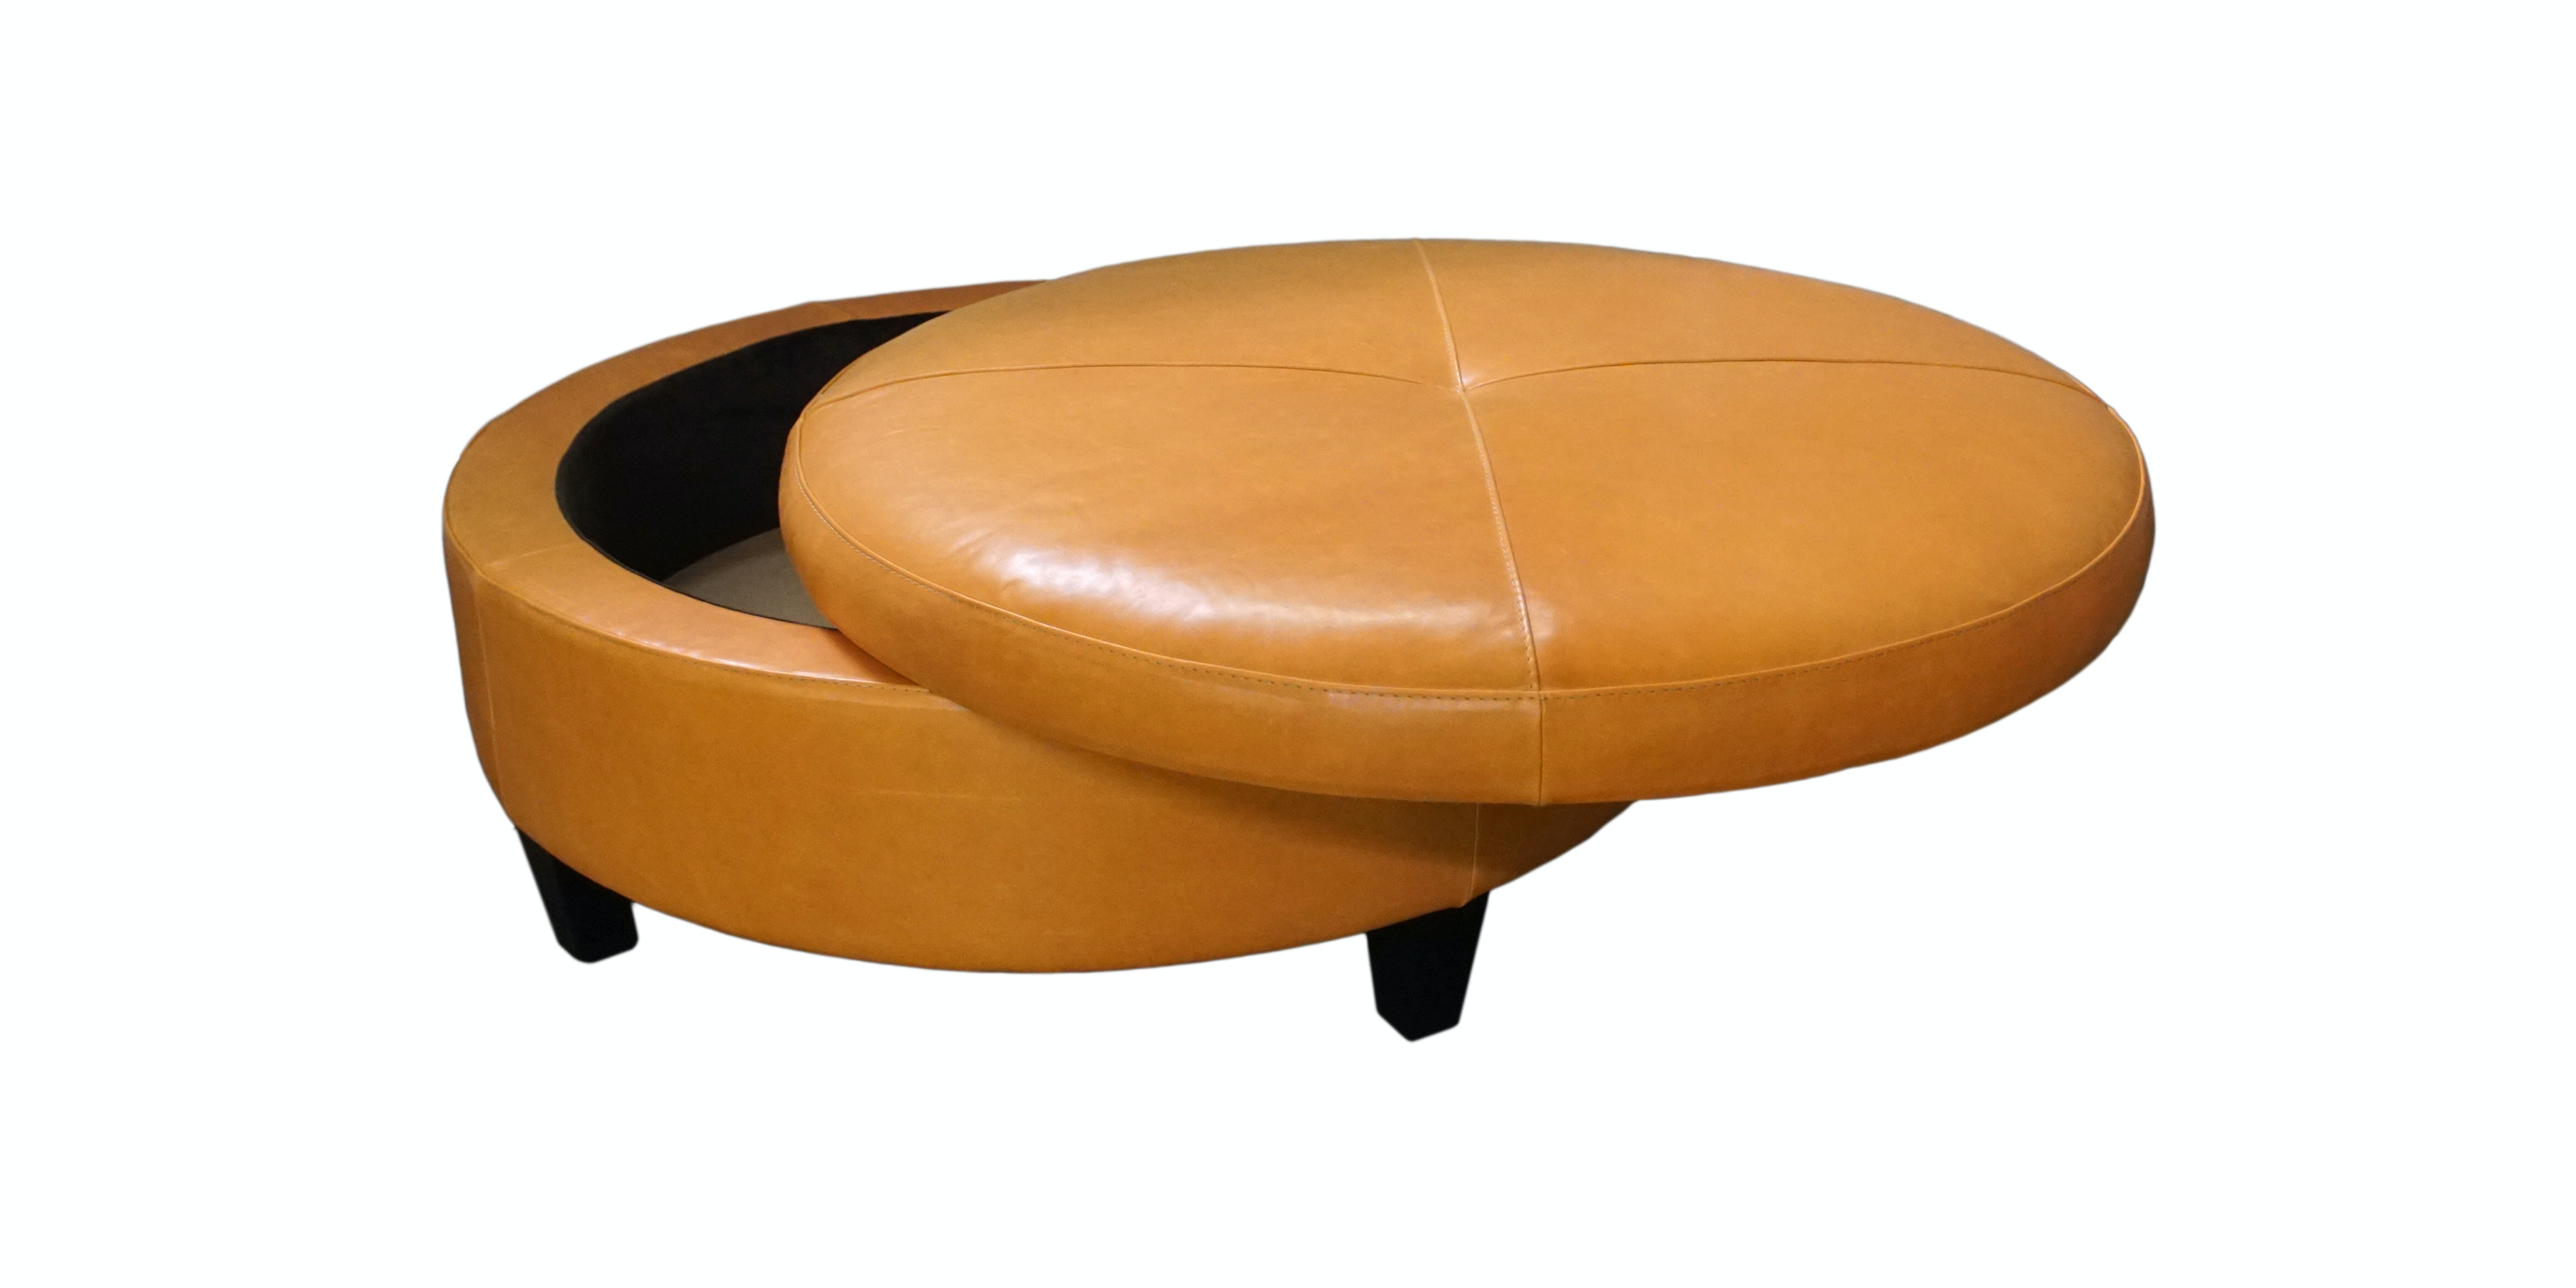 Charmant Jonathan Louis International Large Leather Round Storage Ottoman 82362